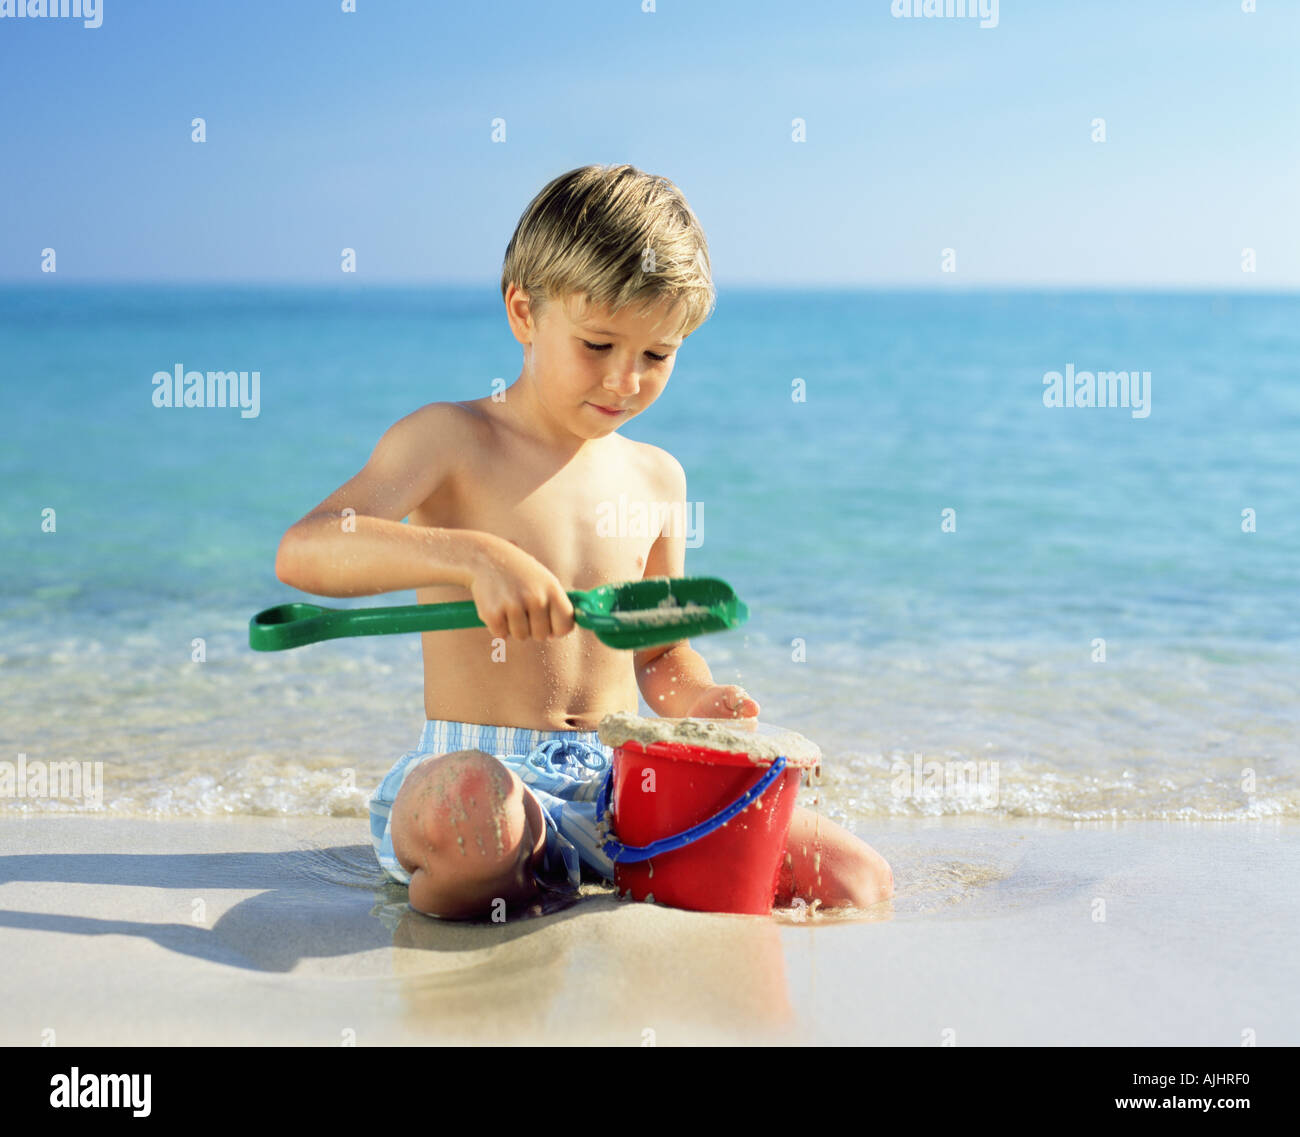 Boy playing with wet sand - Stock Image